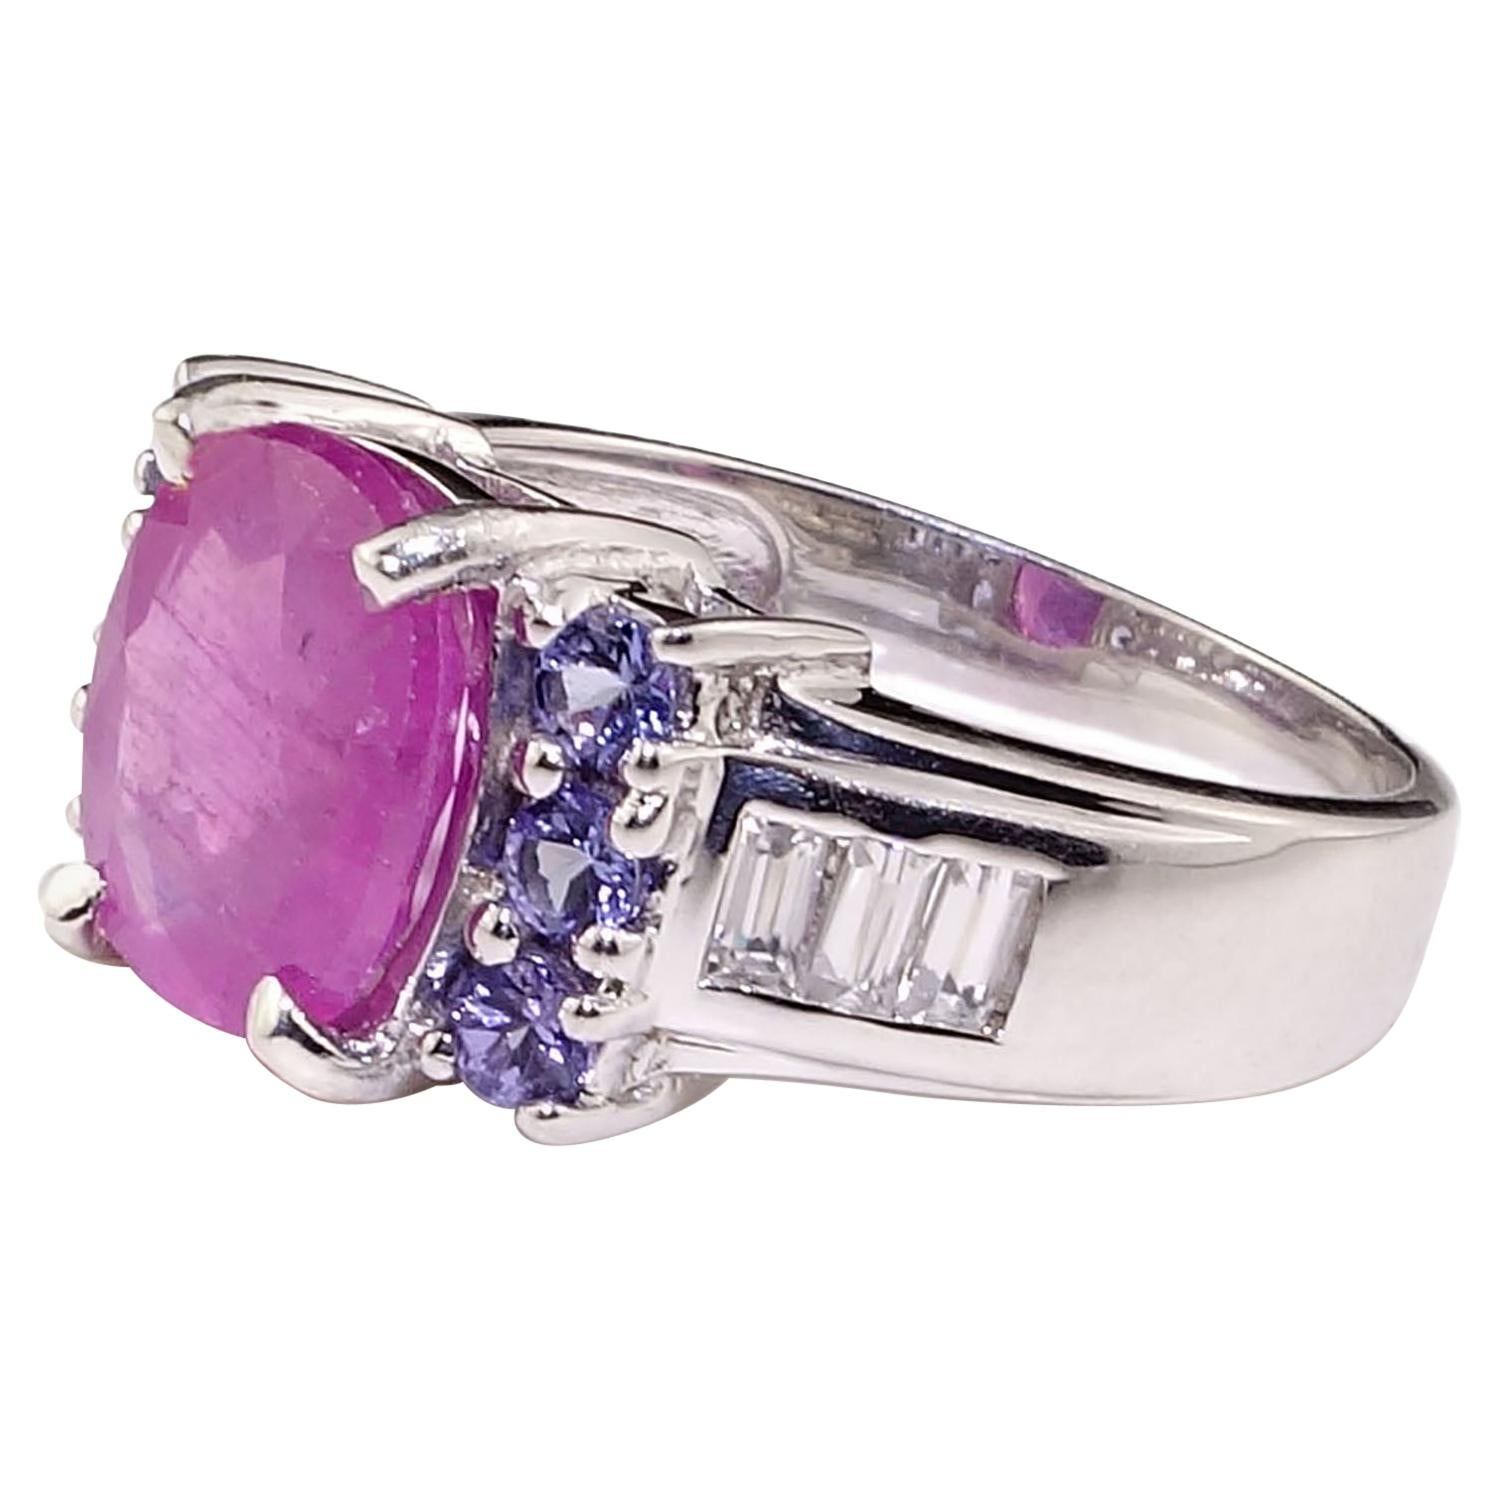 Sparkling Pink Sapphire in Sterling Silver Ring